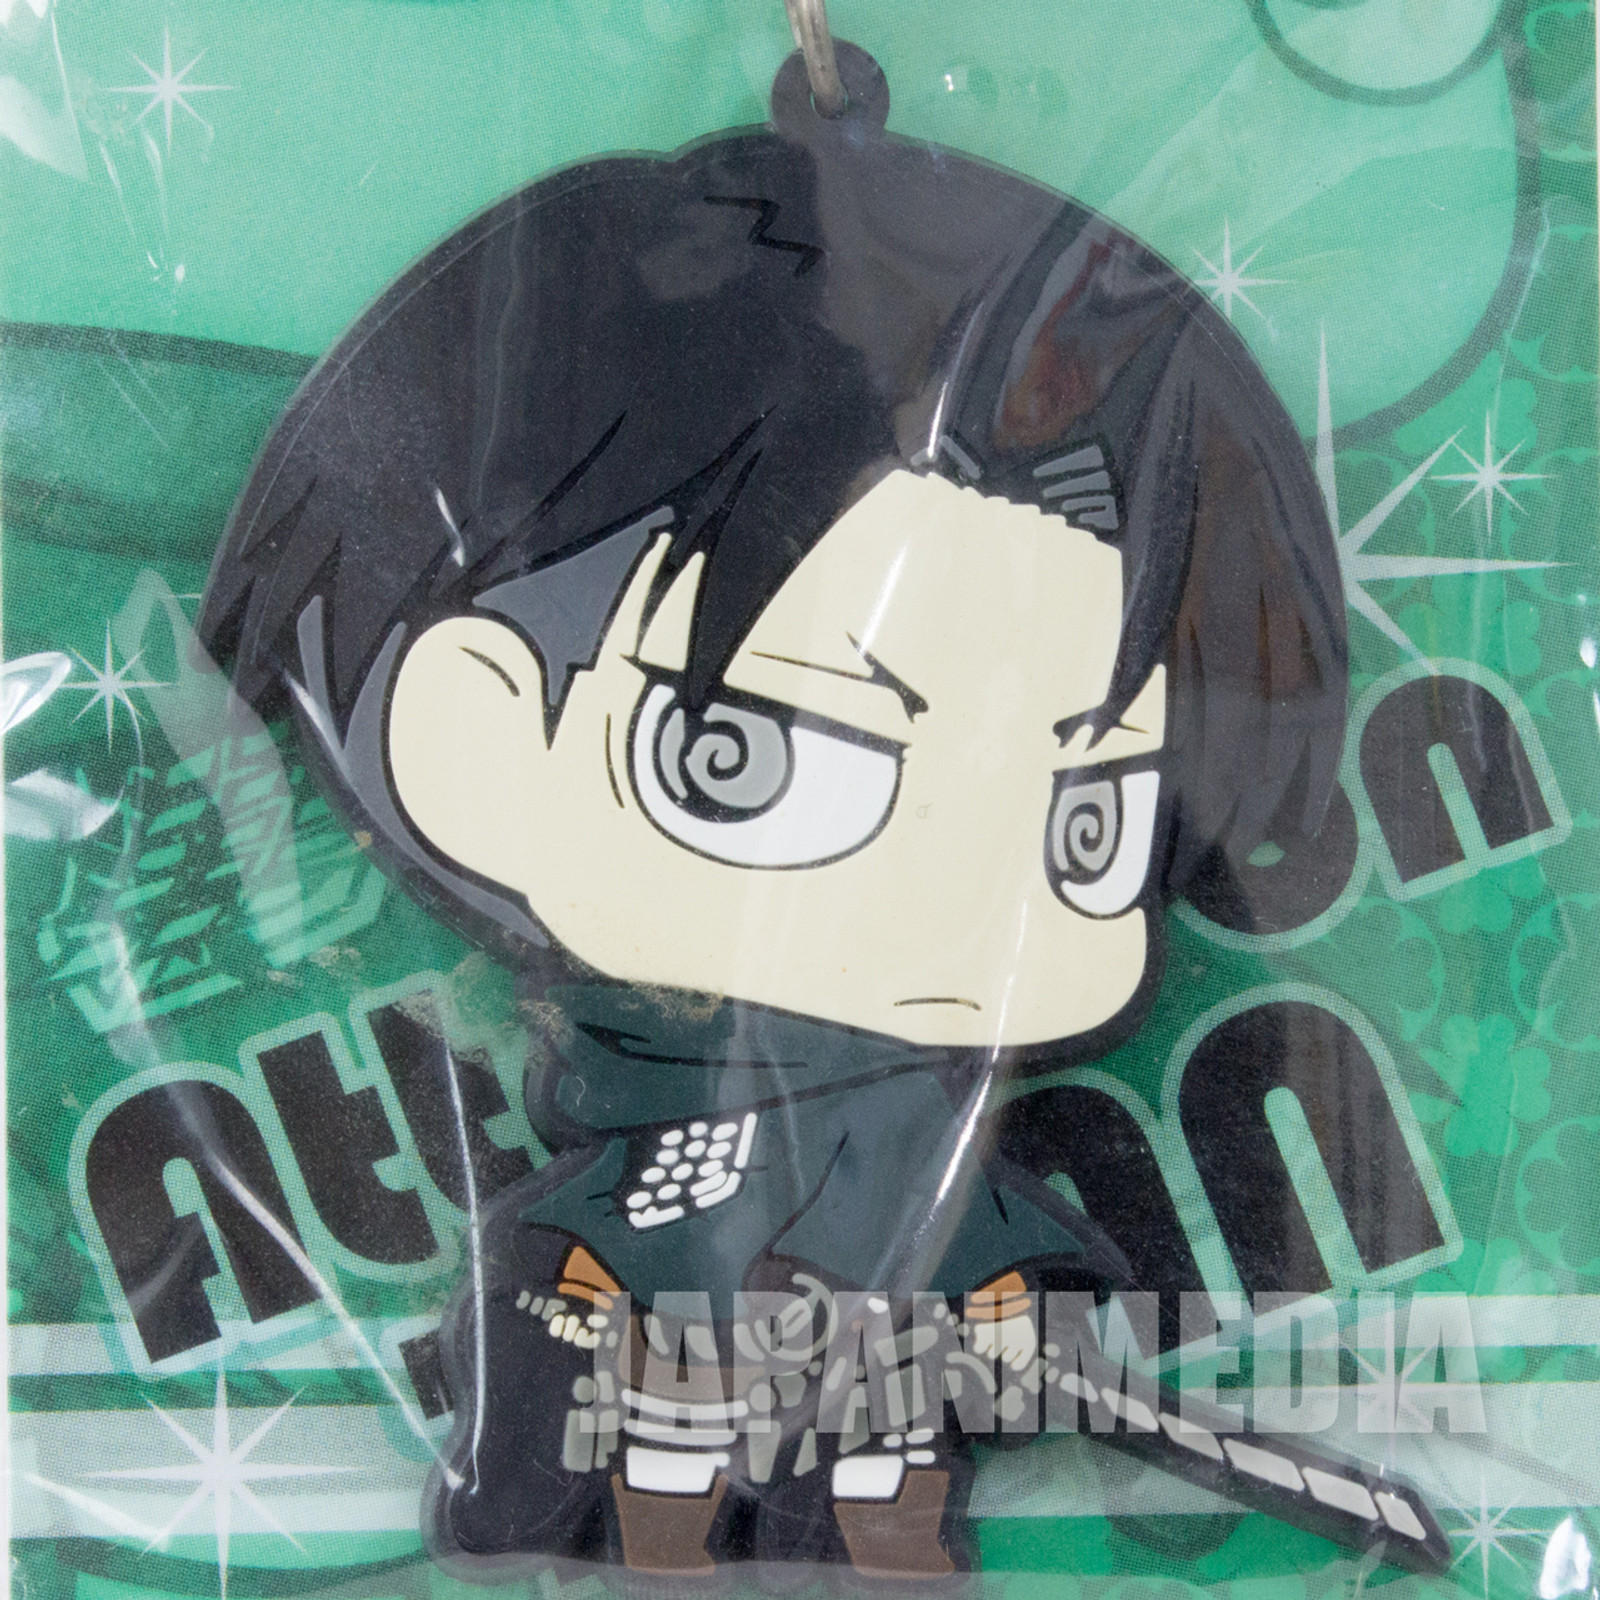 Attack on Titan Levi Ackerman Mascot Rubber Strap JAPAN ANIME MANGA